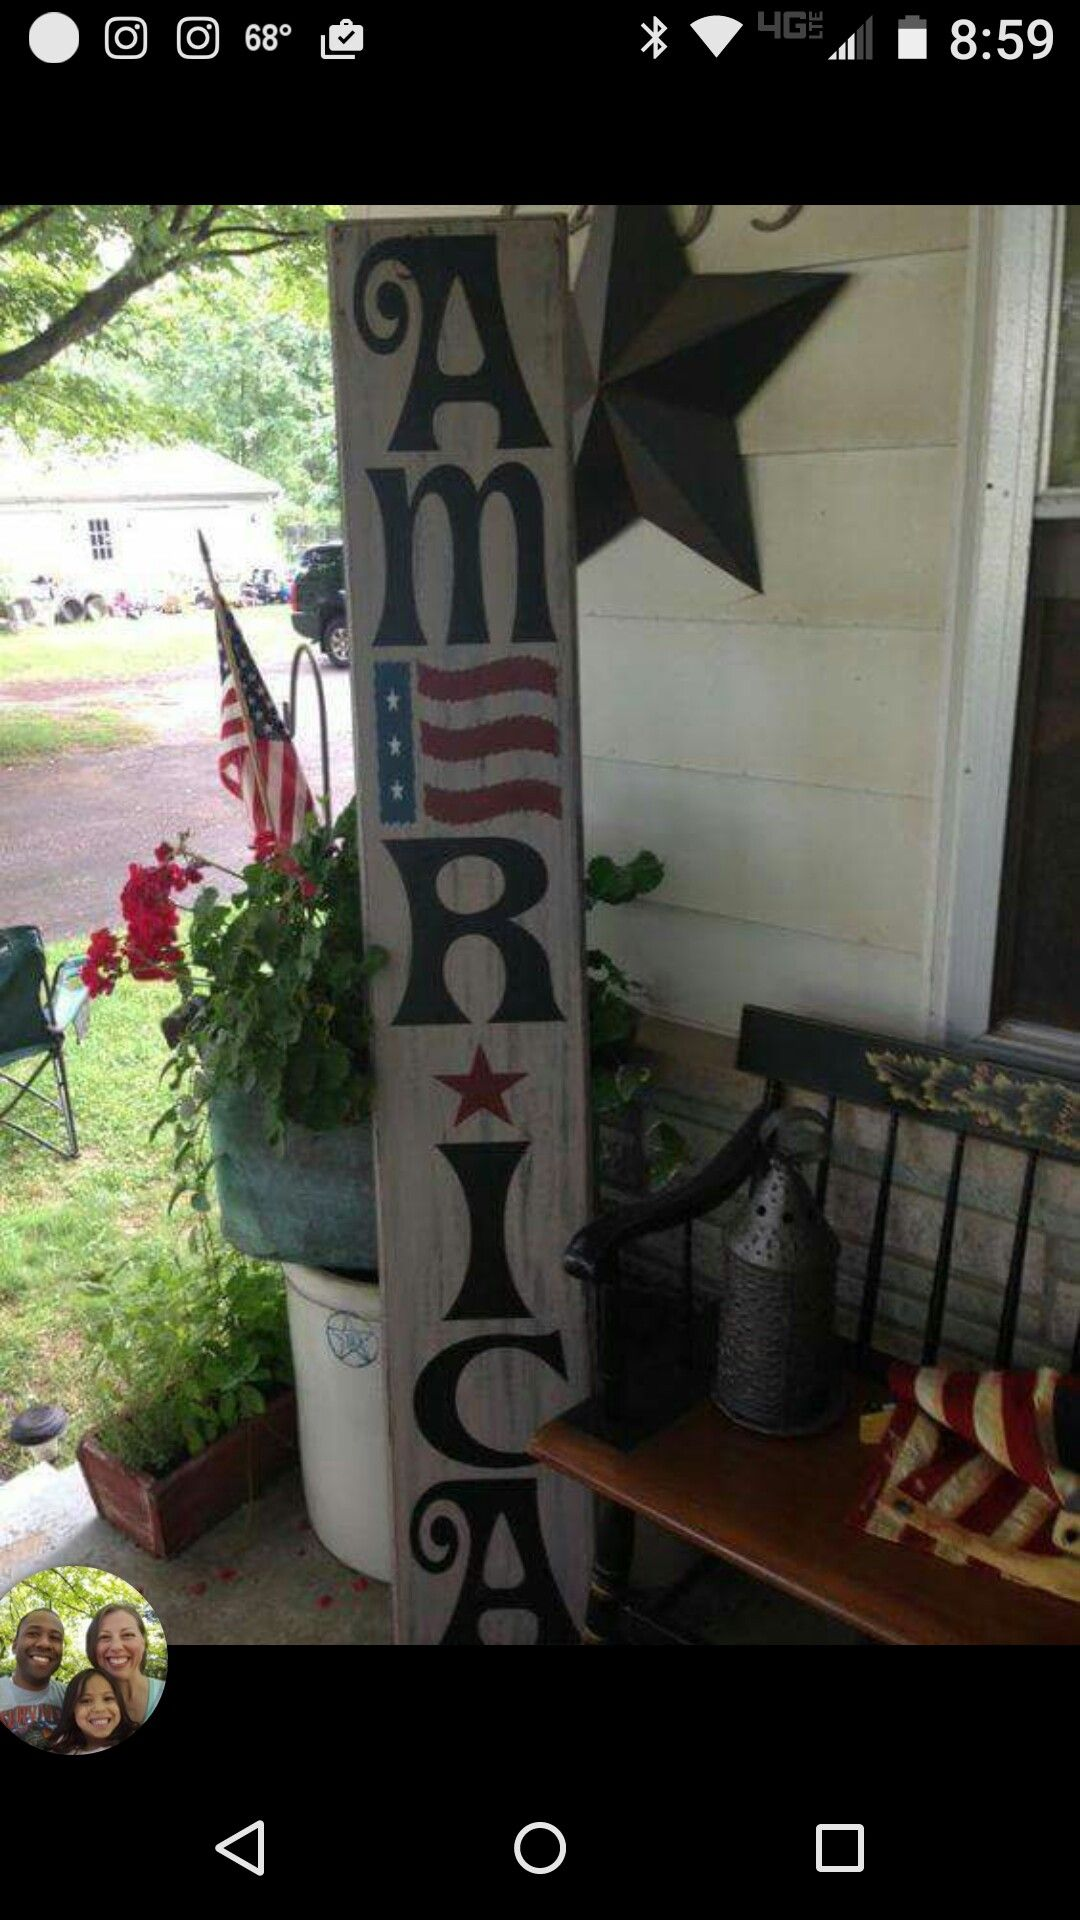 Porch signs welcome my porch barn wood quot what happens on the porch - Porch Signs Welcome My Porch Barn Wood Quot What Happens On The Porch 45